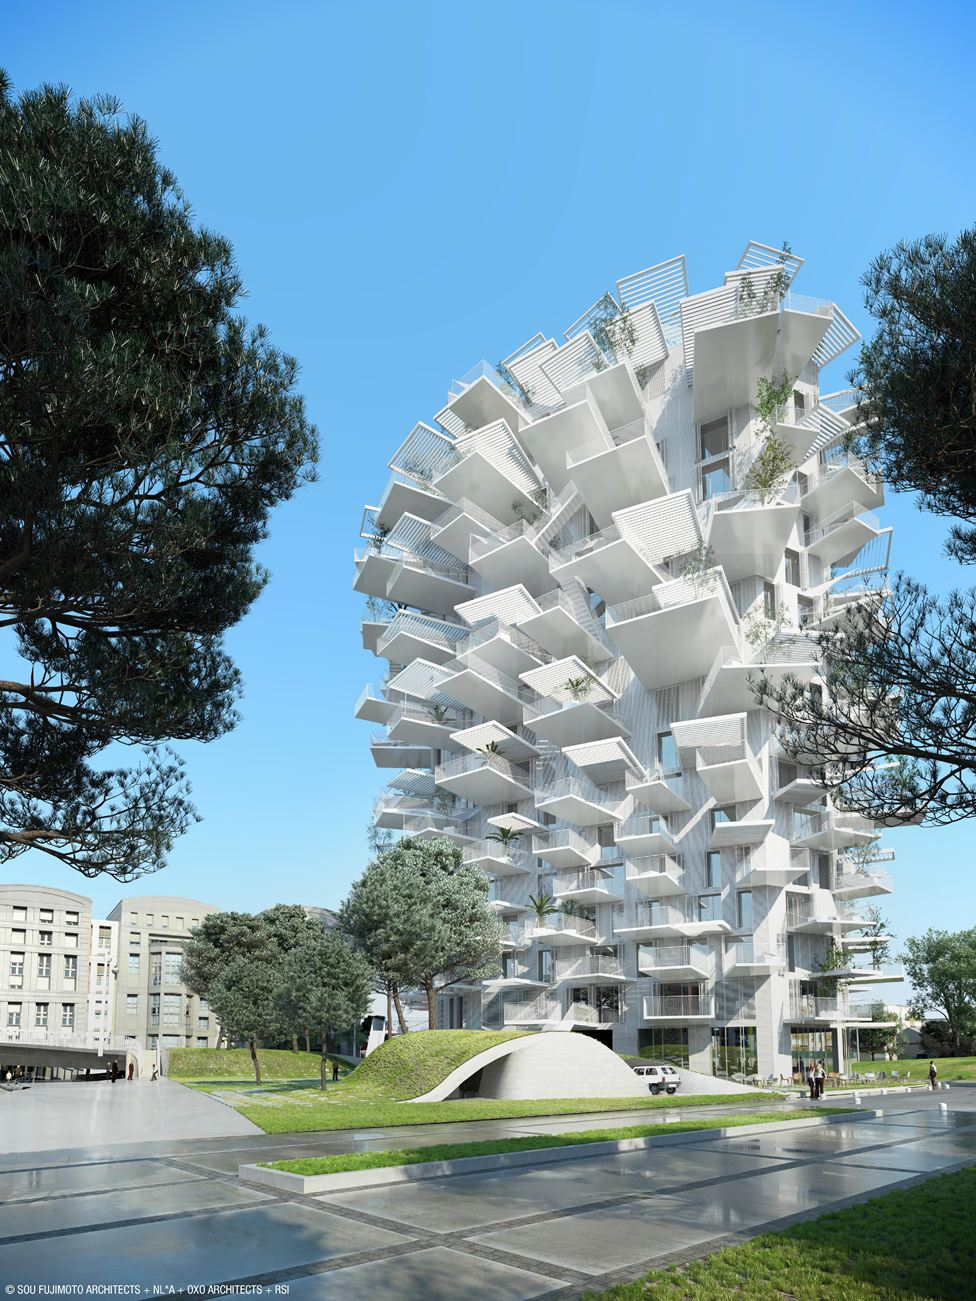 The White Tree by Sou Fujimoto Architects (2)